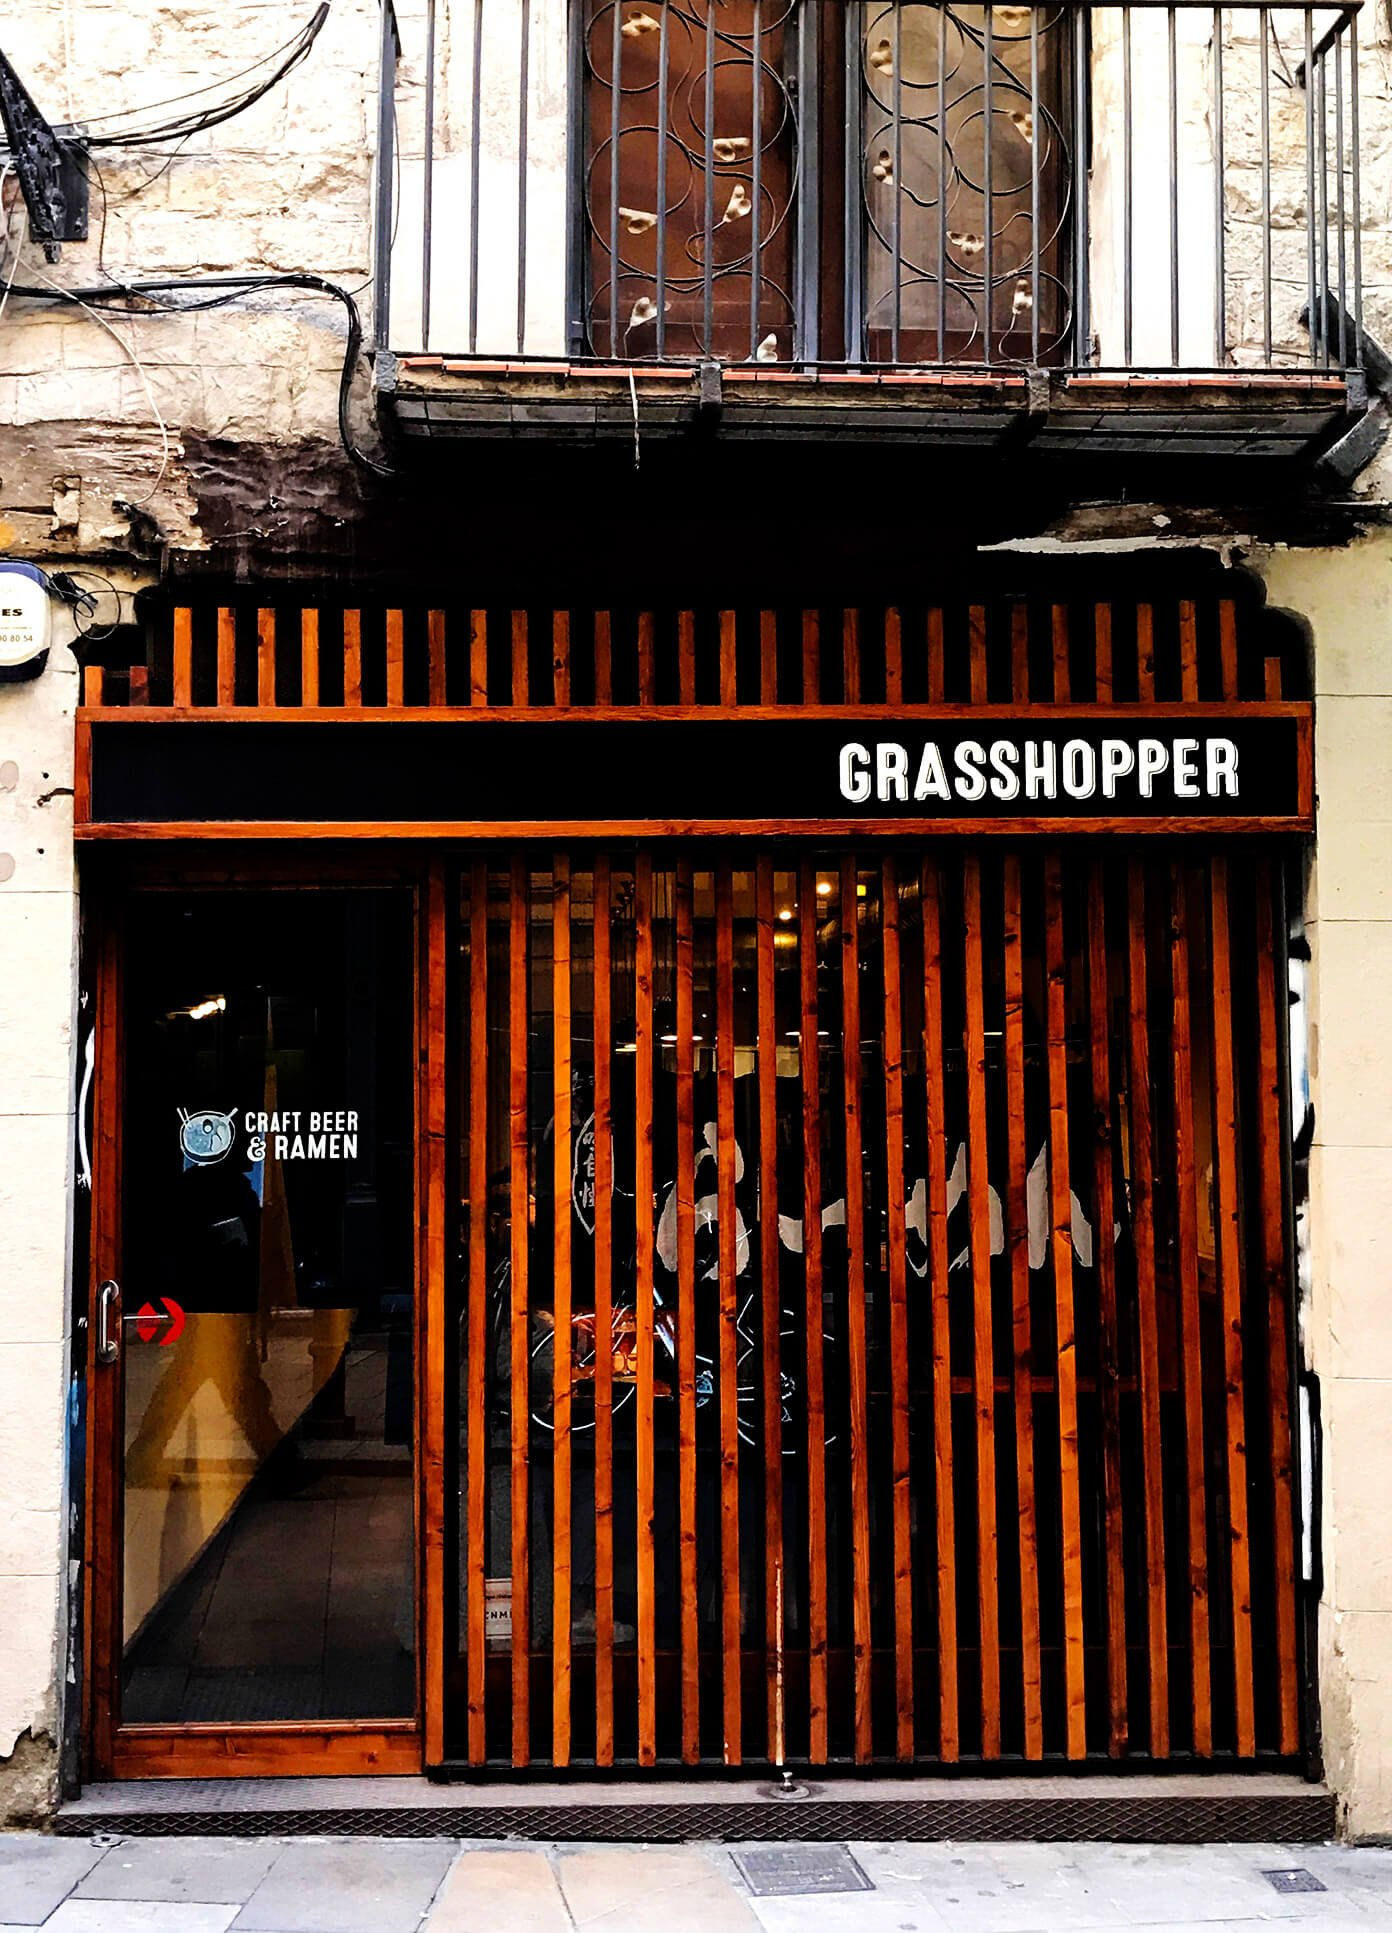 Grasshopper ramen bar | Gimme Some Barcelona Travel Guide